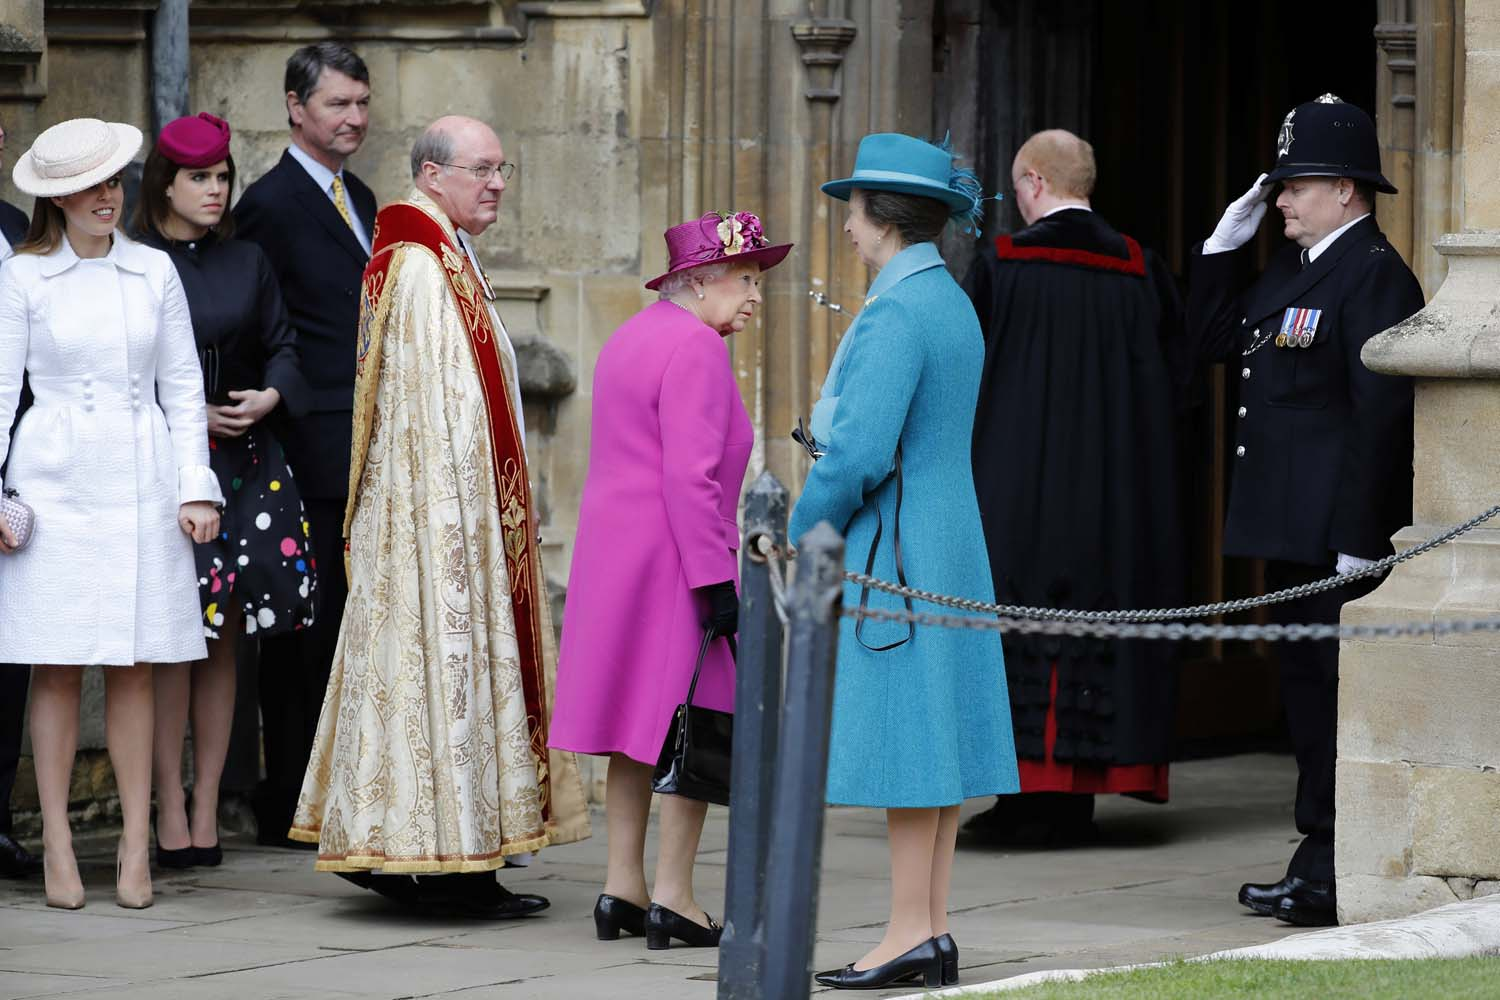 Britain's Queen Elizabeth and other members of Britain's royal family arrive for the annual Easter Sunday service at St George's Chapel at Windsor Castle in Windsor, Britain, April 1, 2018. Tolga Akmen/Pool via Reuters